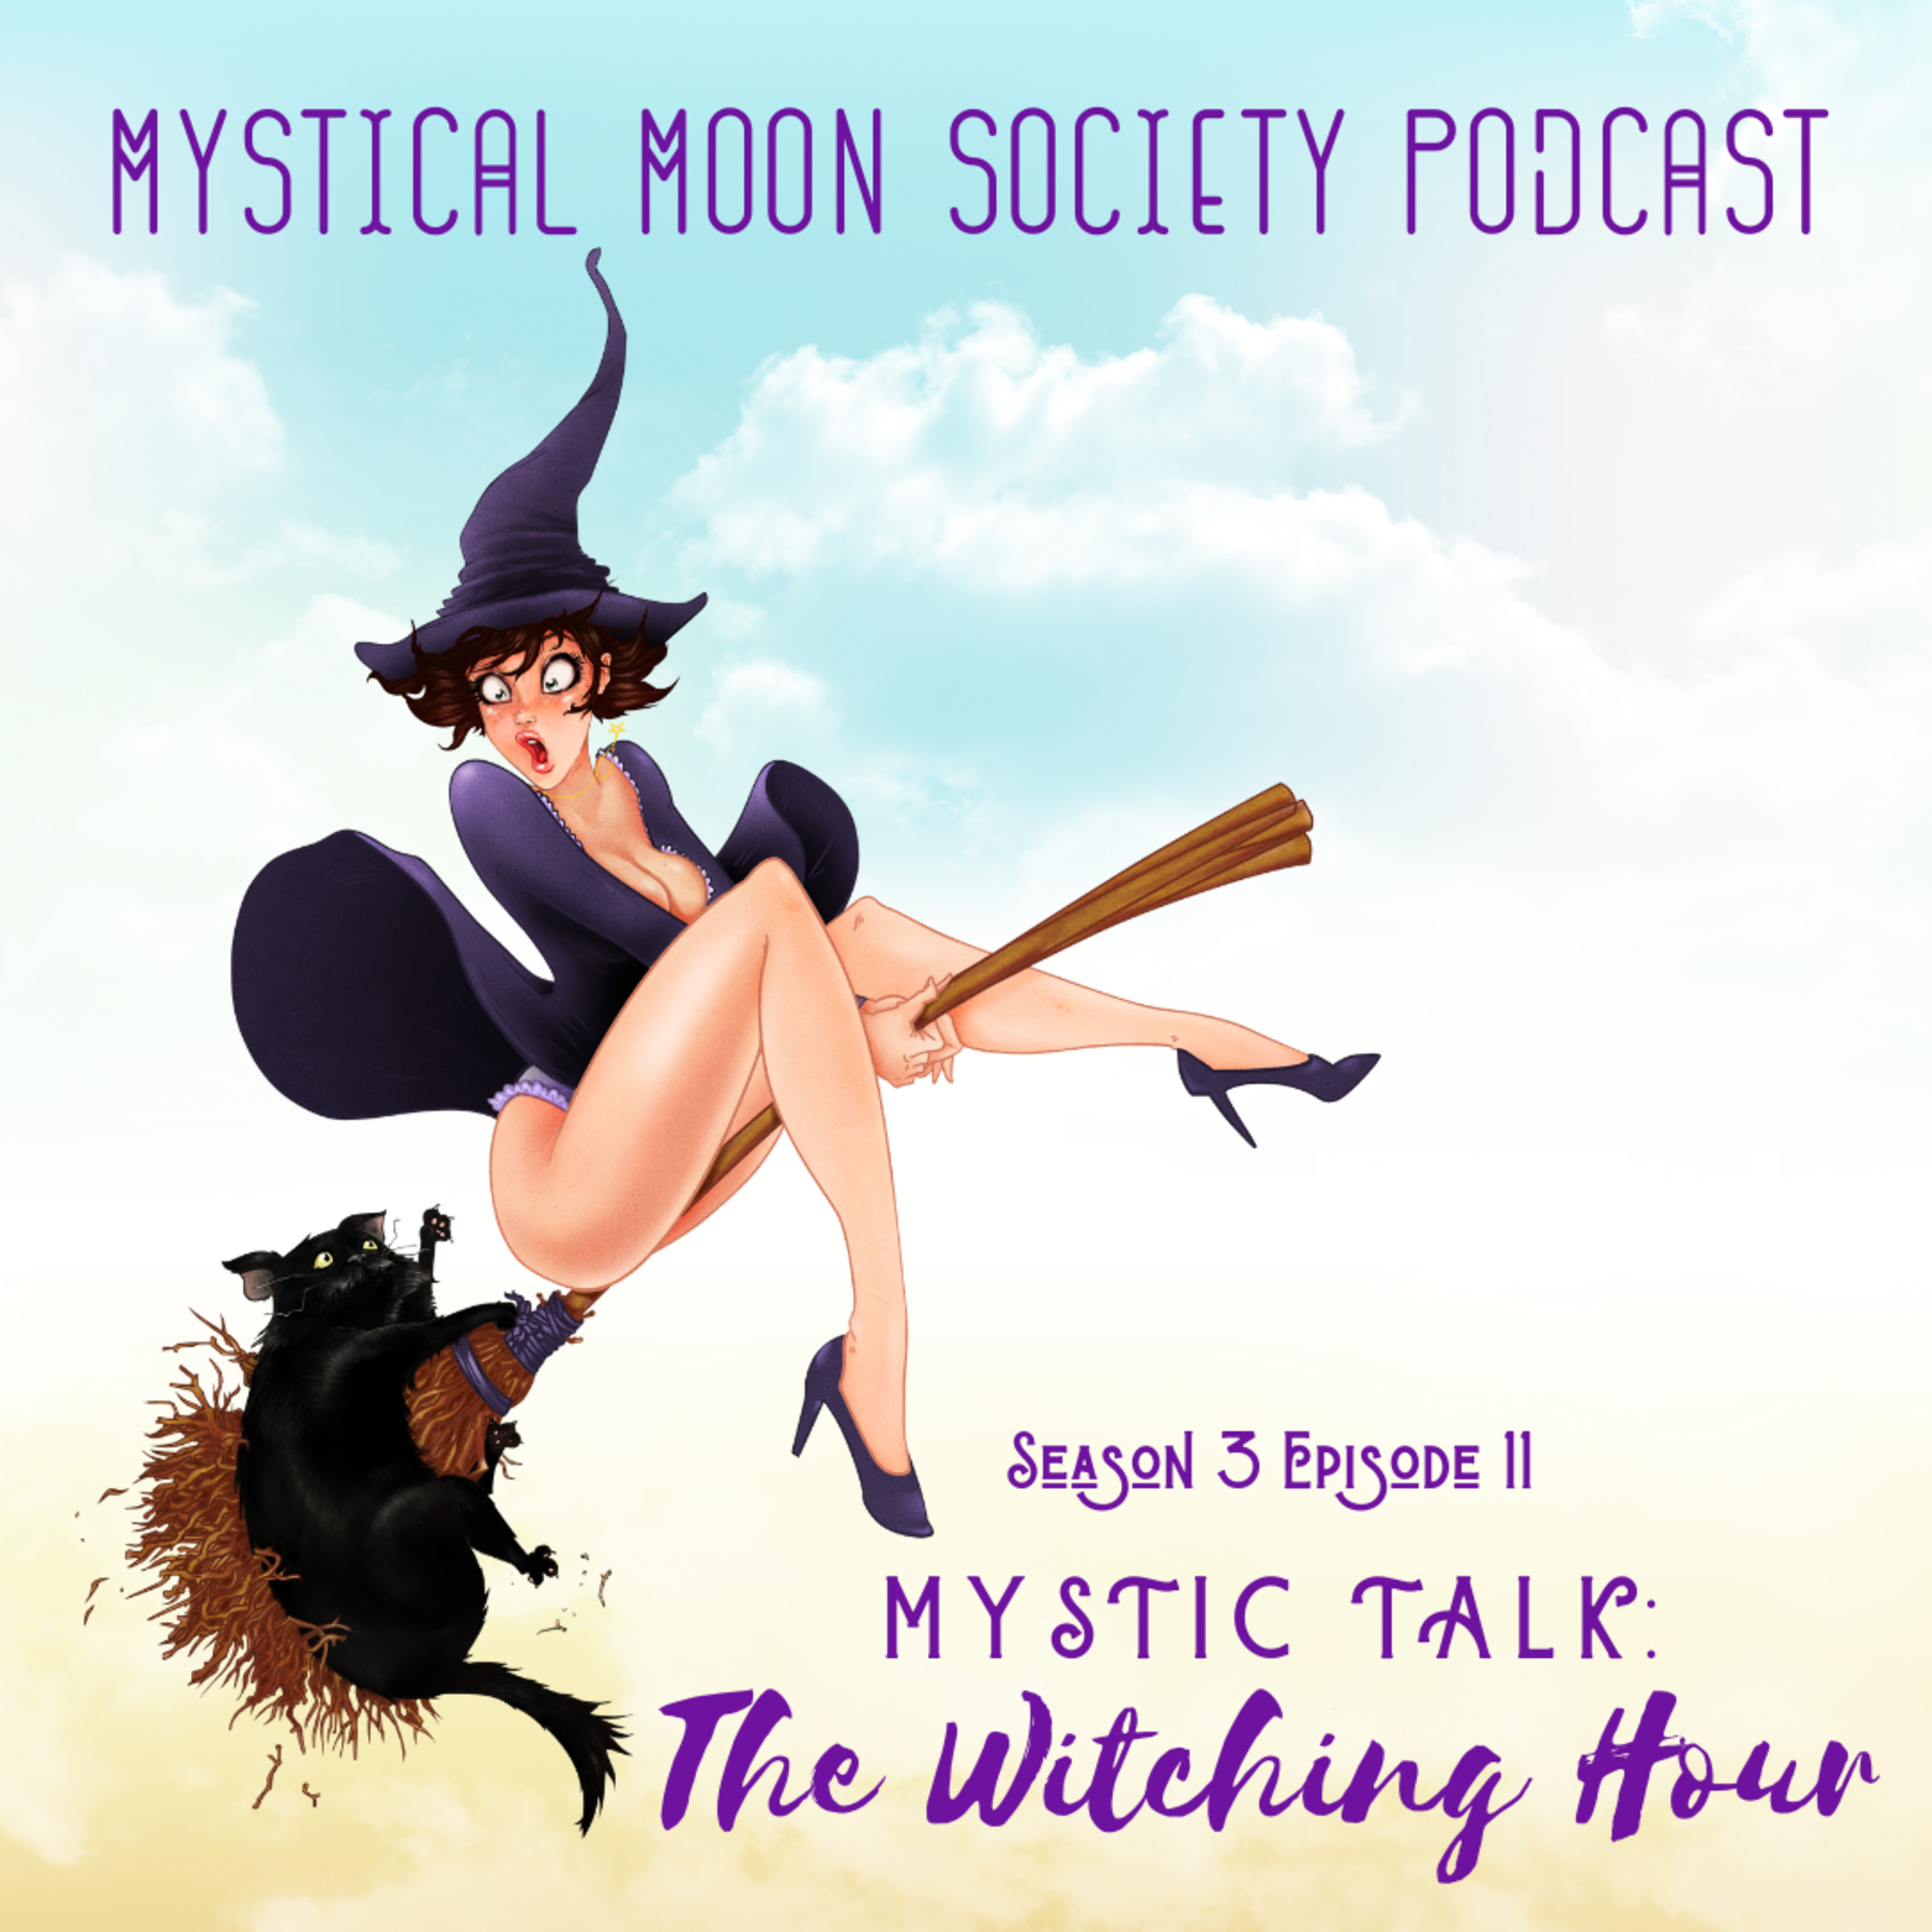 Mystic Talk: The Witching Hour